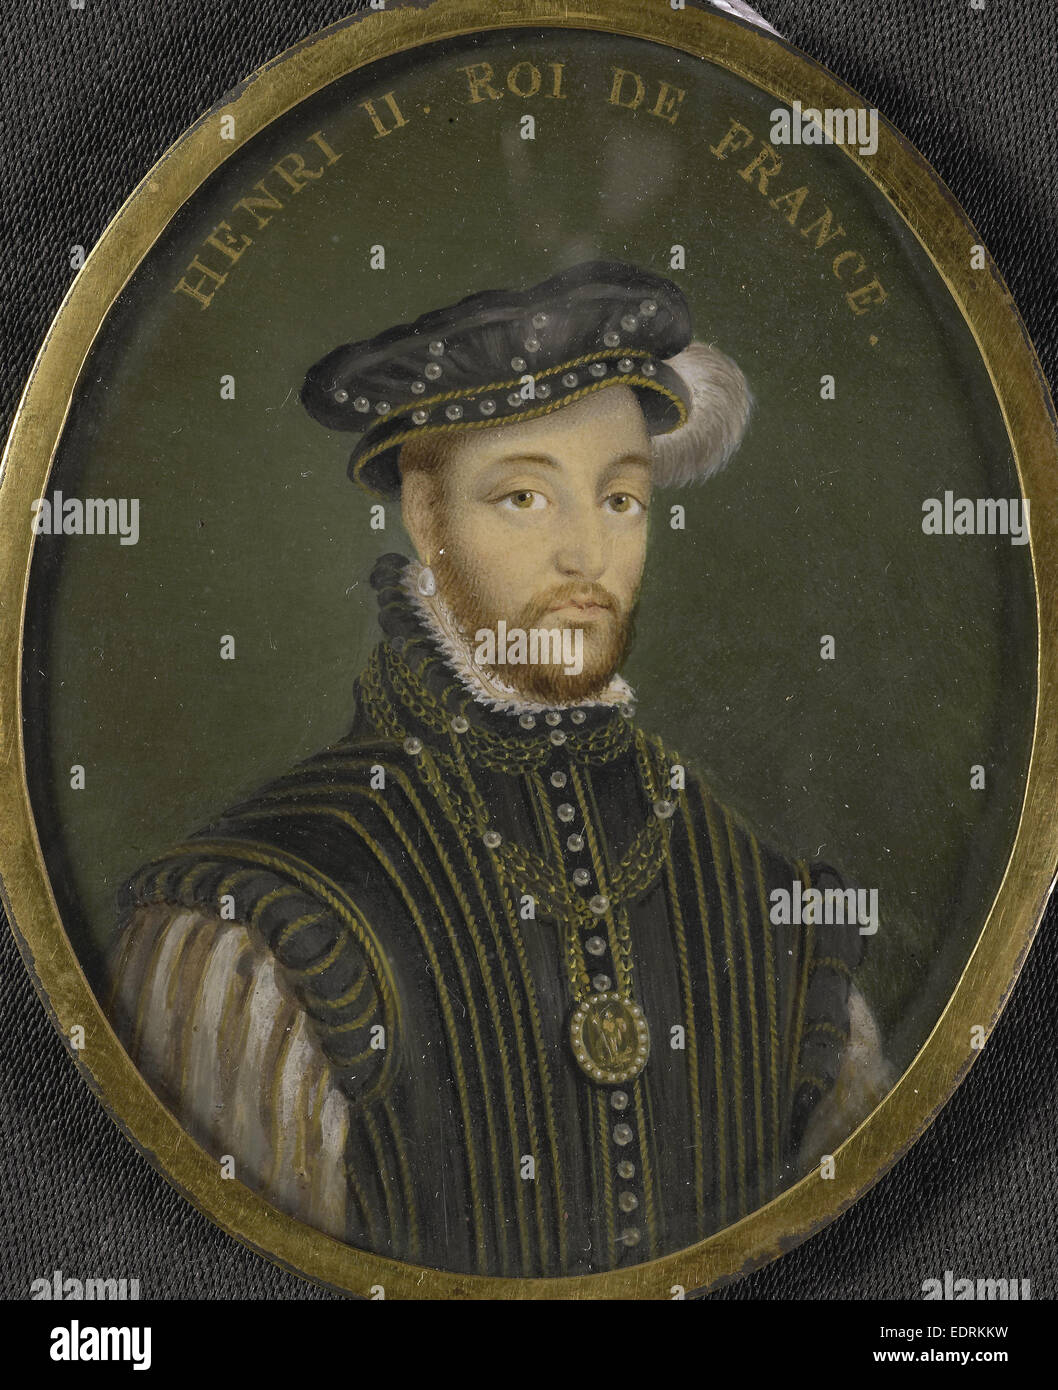 Henry II, 1518-59, king of France, Anonymous, 1700 - 1799, Portrait miniature Stock Photo